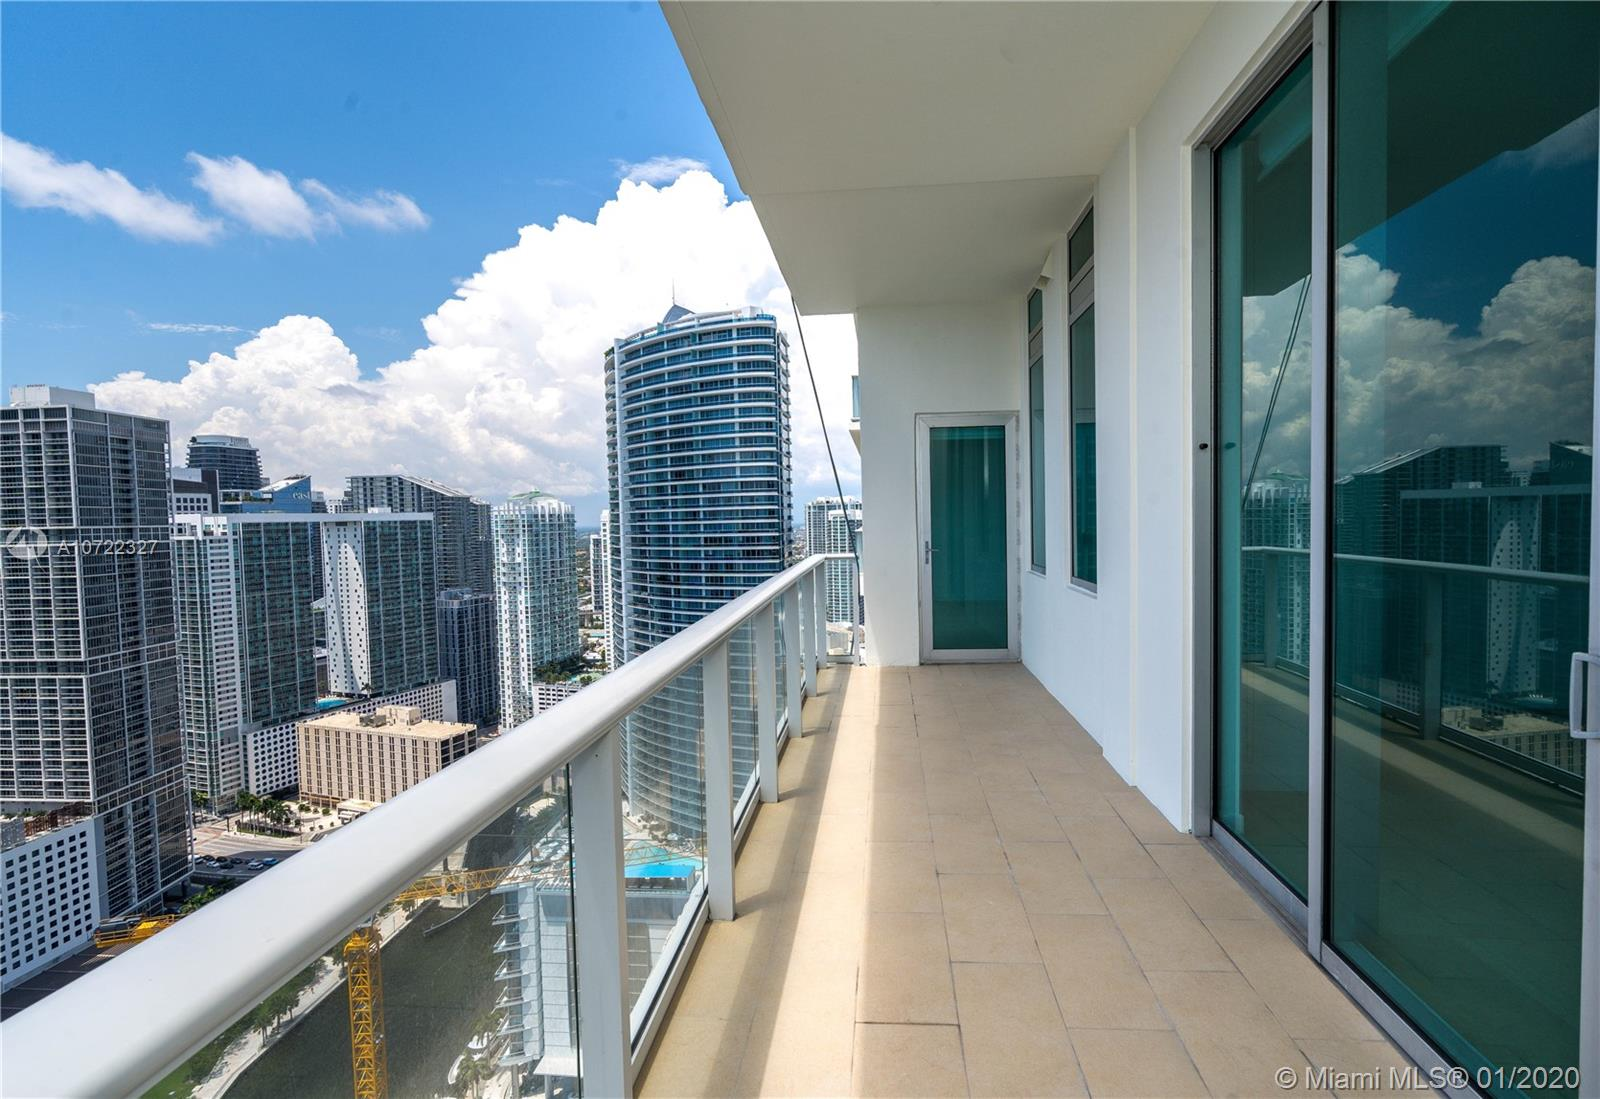 300 Biscayne blvd-PH 3802 miami-fl-33131-a10722327-Pic15